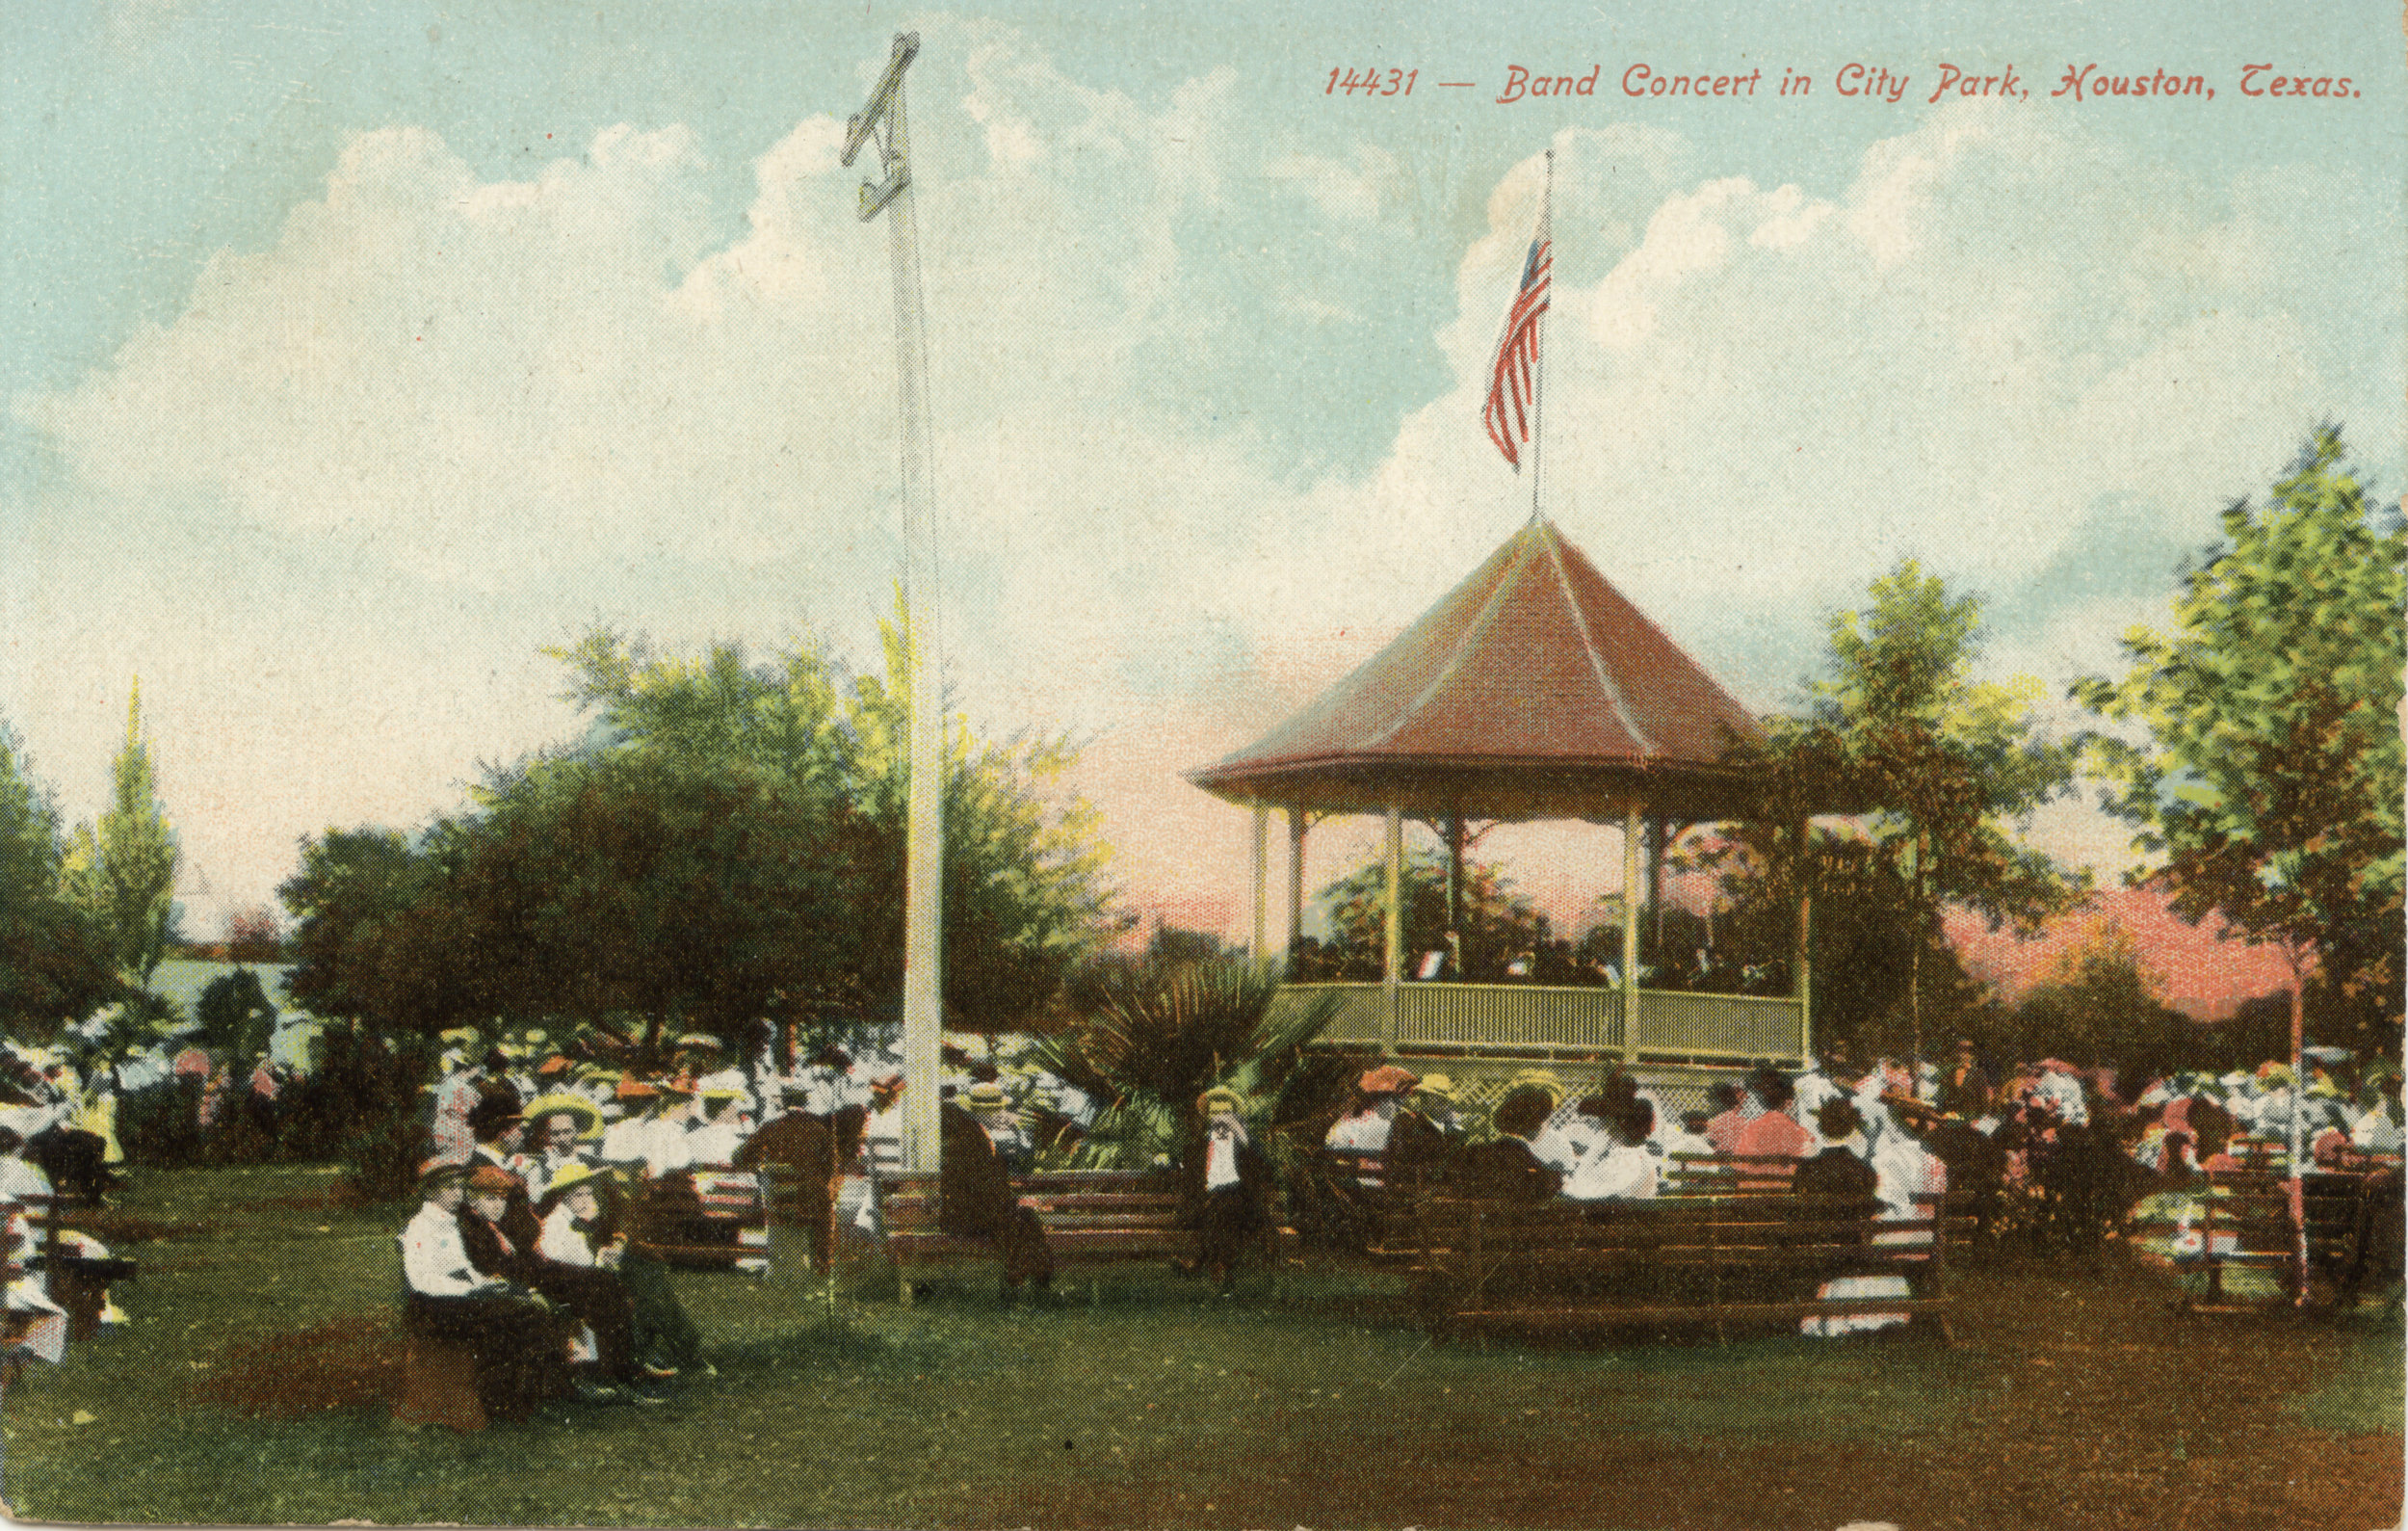 The original bandstand in Sam Houston Park stood from 1901 to 1915 and was a popular setting for free concerts and other activities. Image: Permanent Collection of The Heritage Society.